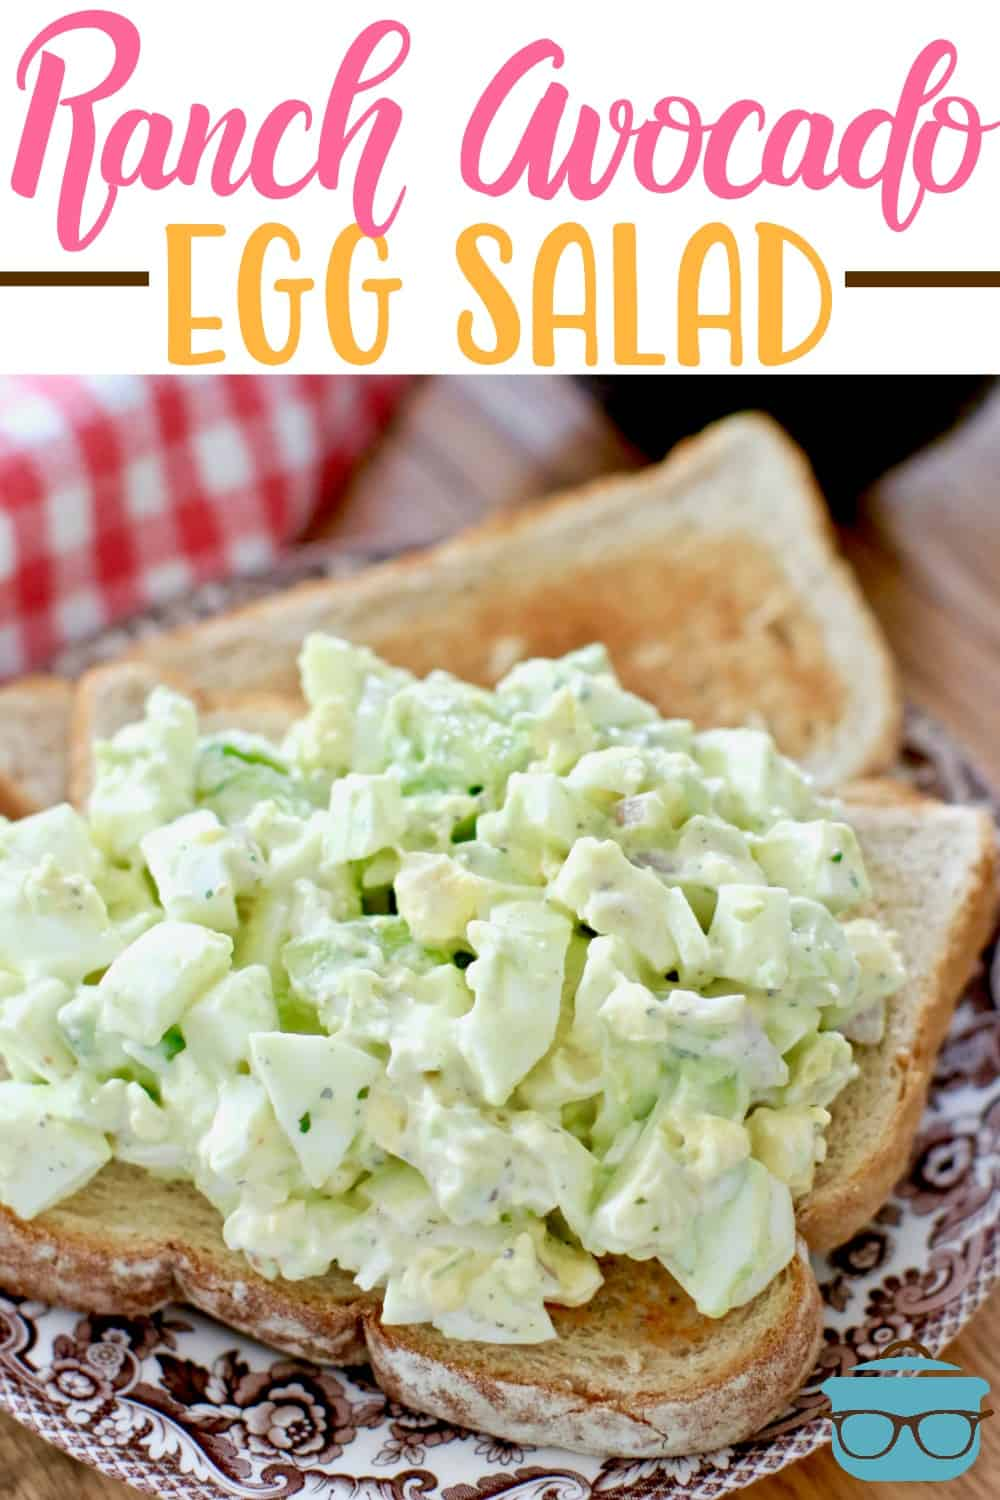 Ranch Avocado Egg Salad recipe is made with avocadoes, hardboiled eggs, shallot, ranch seasoning, mayonnaise. Low carb too! Serve as a wrap or sandwich! #avocadoeggsalad #brunch